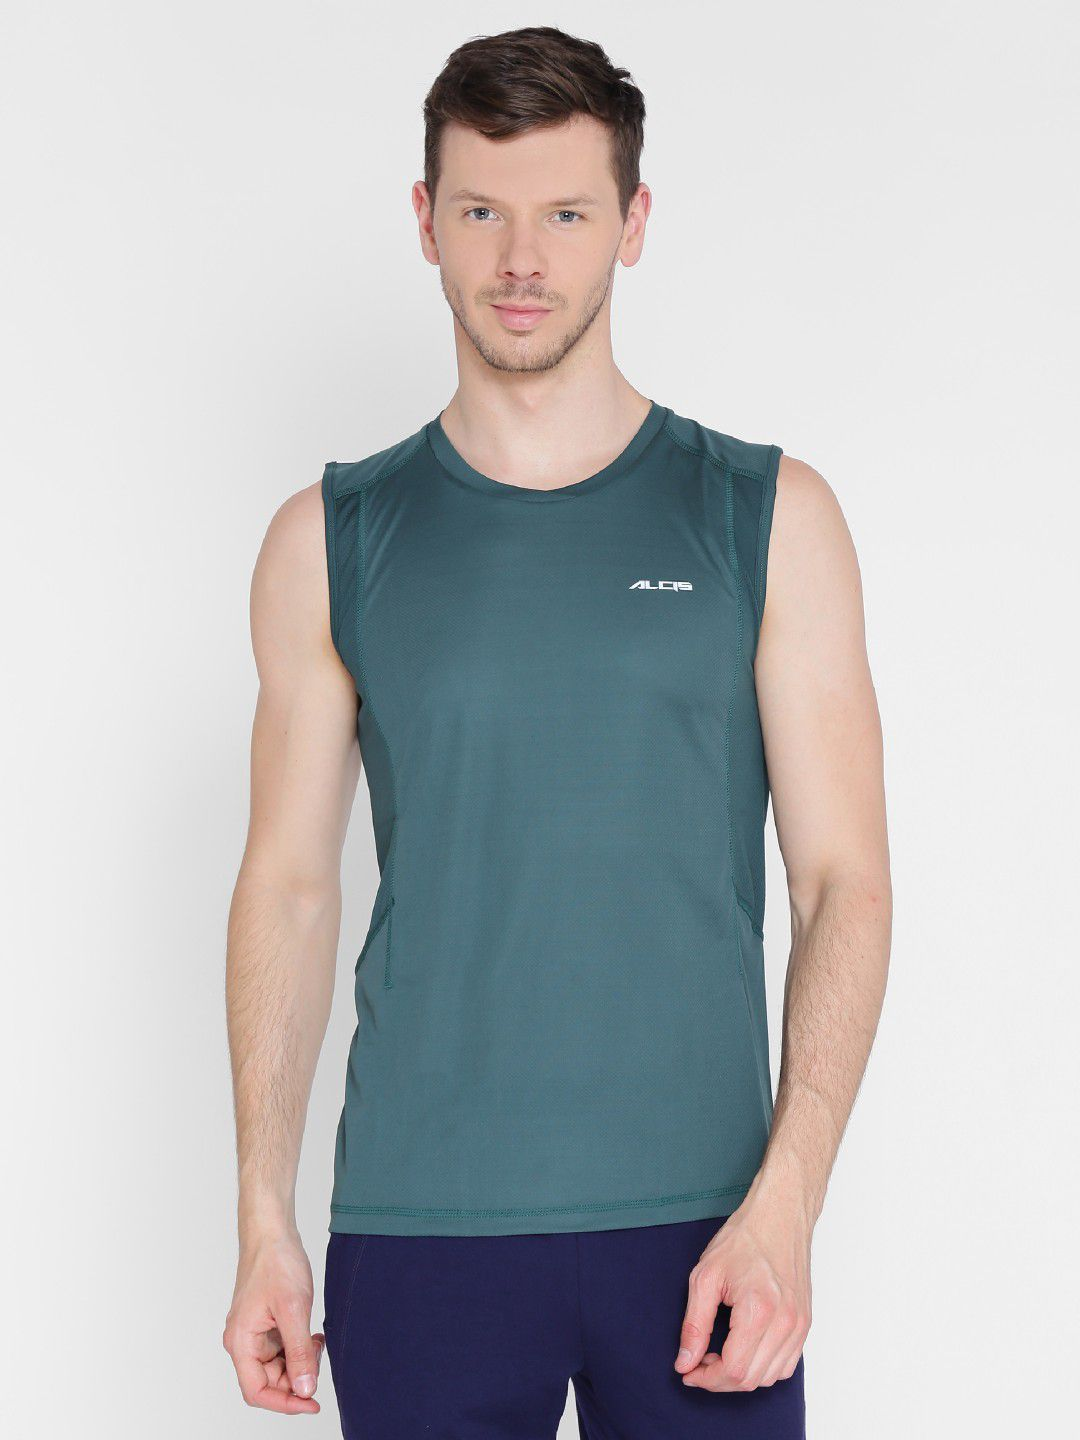 Alcis Mens Solid Olive Green Running T-Shirt